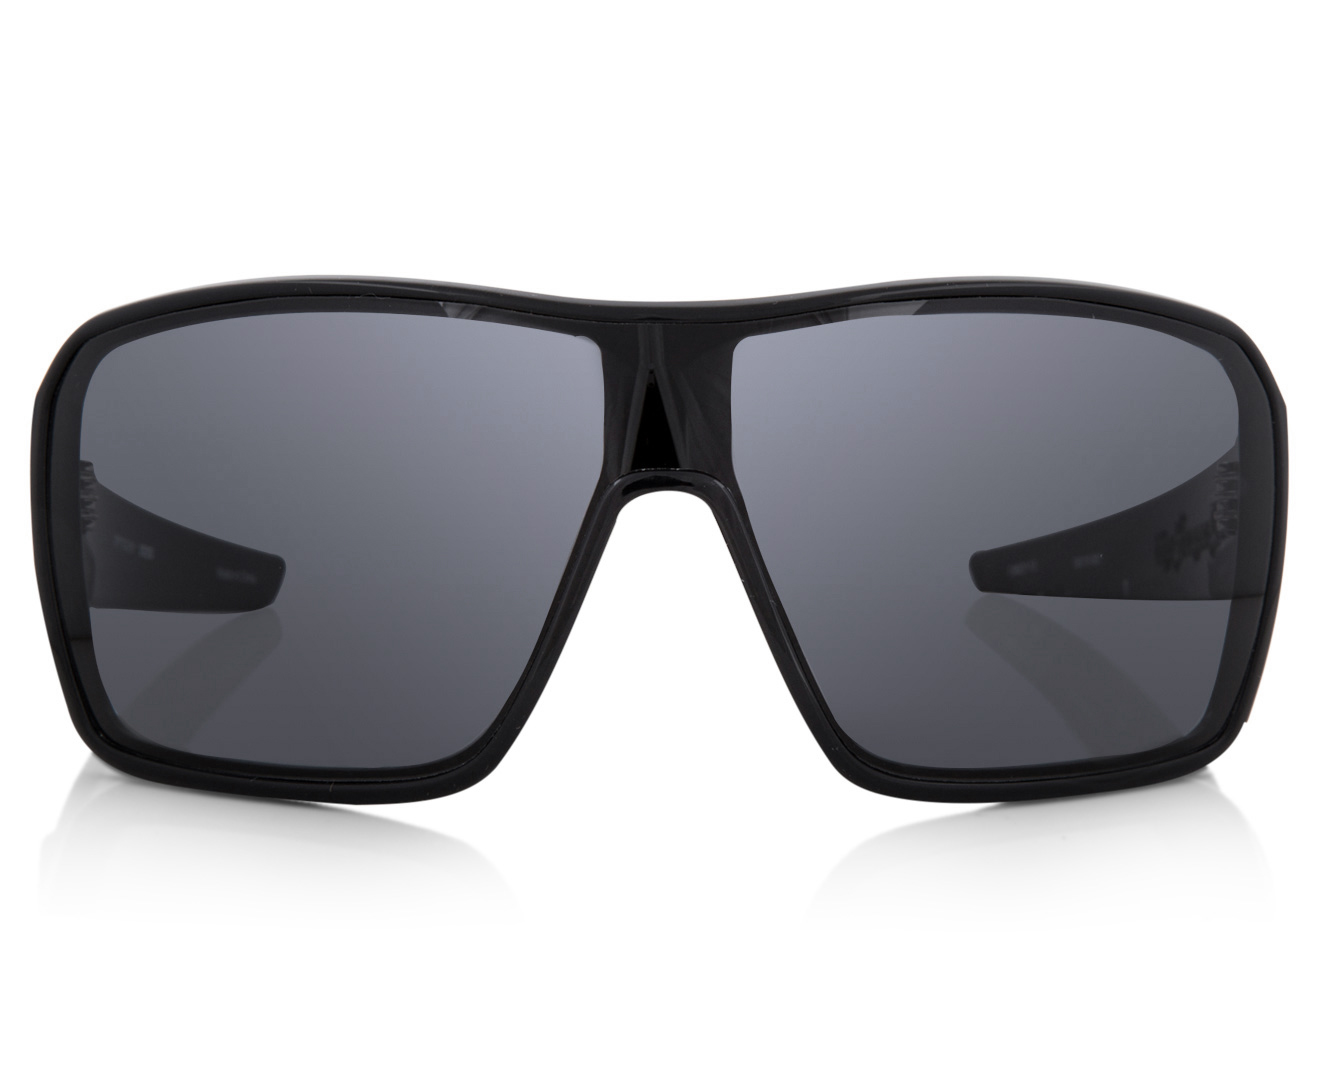 b6dc57b619 Fox Men s The Super Duncan Sunglasses - Polished Black Grey